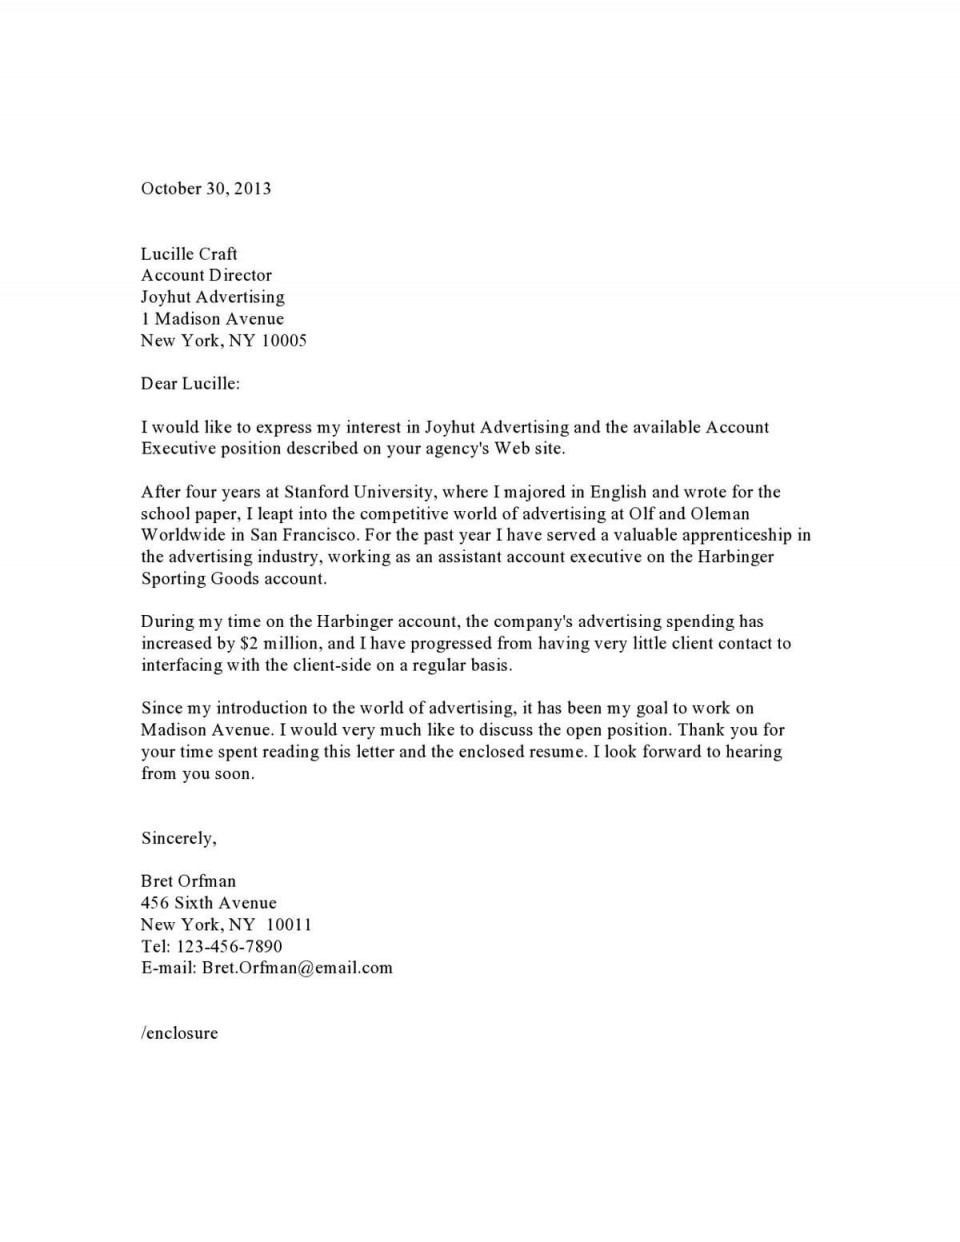 005 Stirring Generic Cover Letter For Resume High Resolution  General Example960